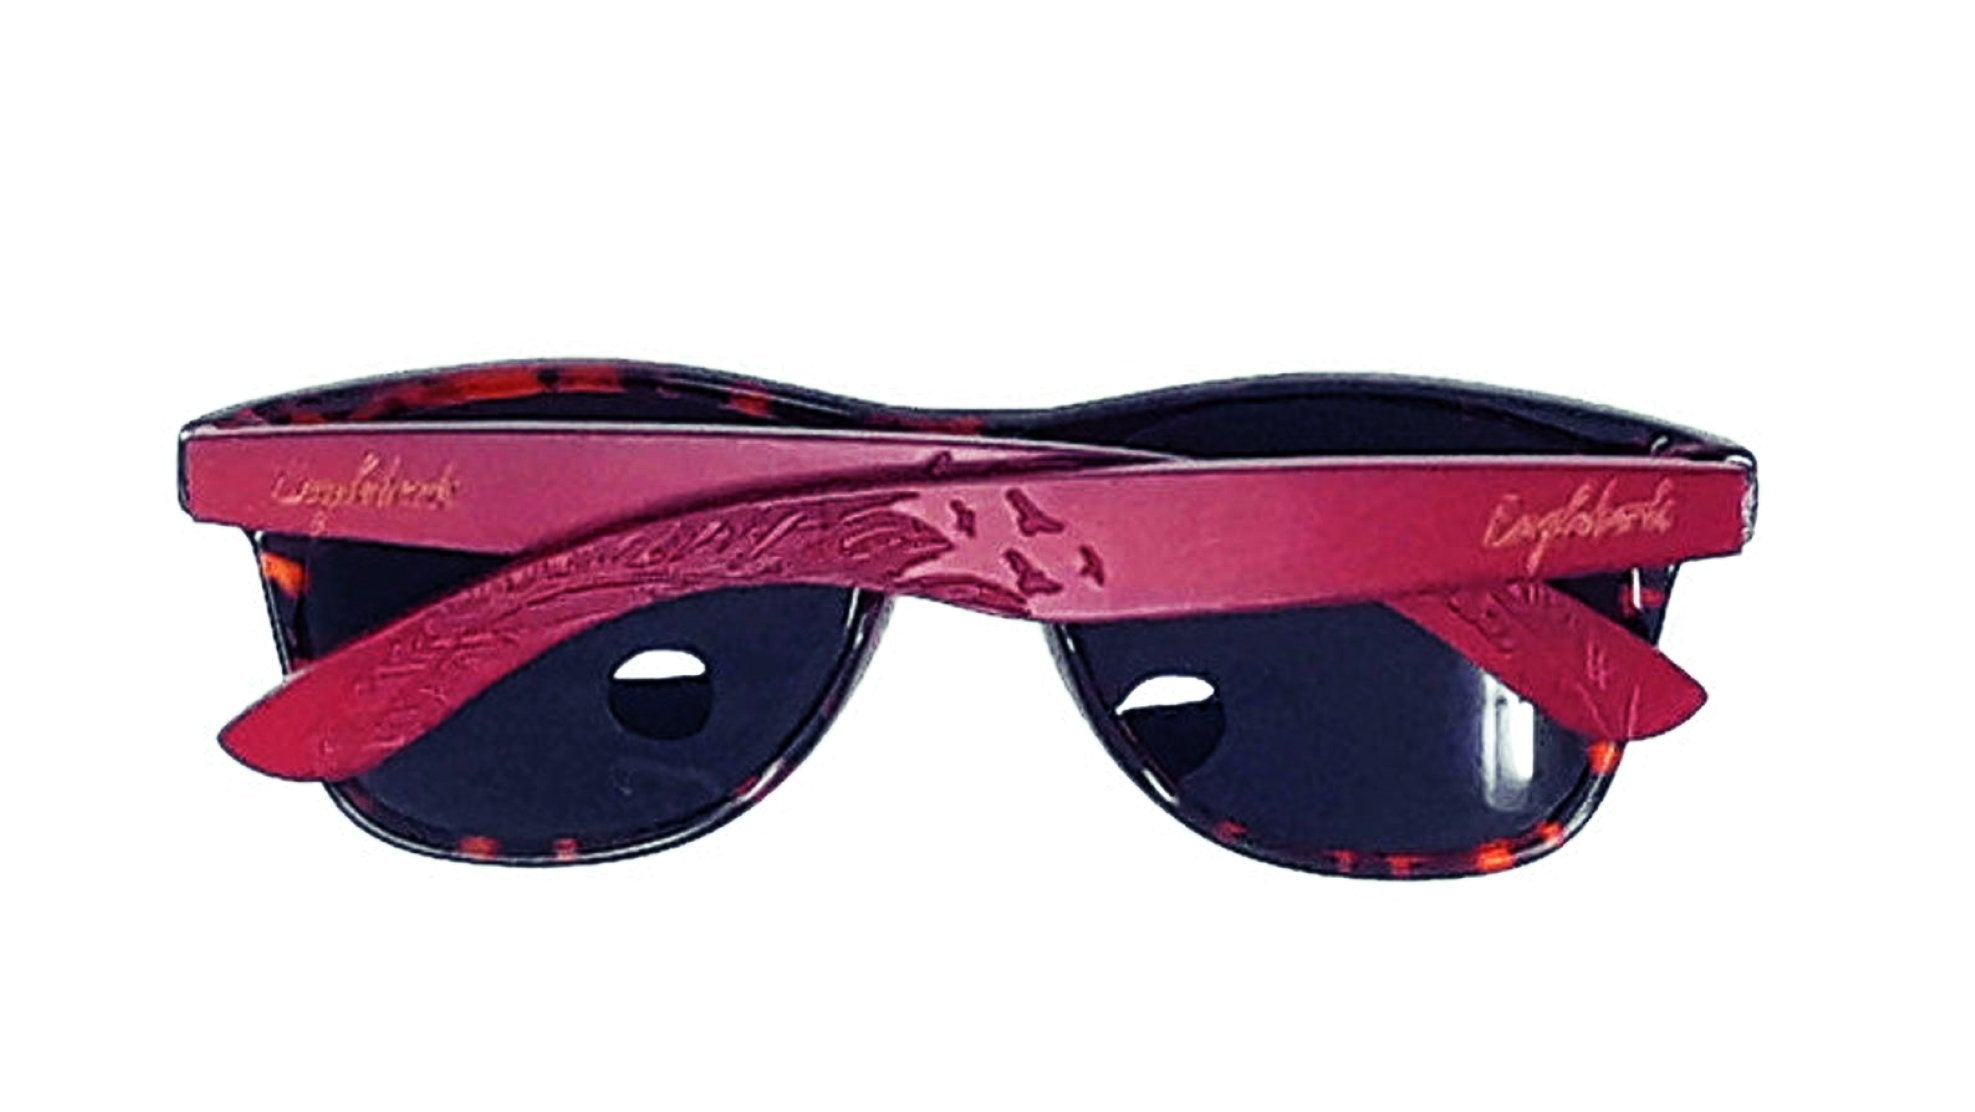 Red Bamboo Tortoise Framed Sunglasses With Wood Case, Polarized,